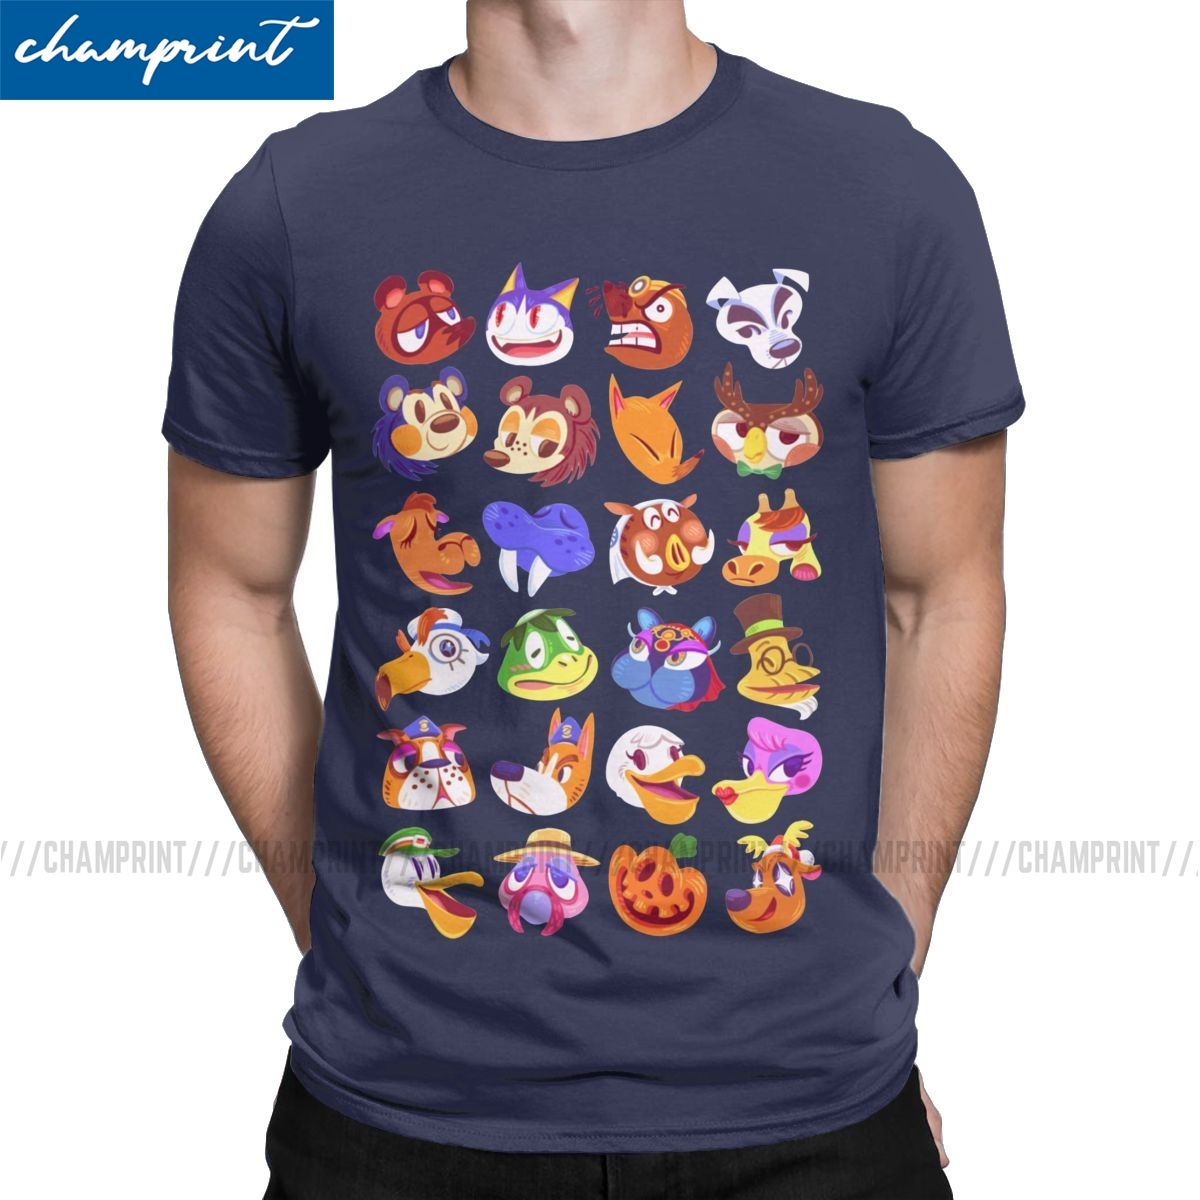 Amazing Meet The Neighbors T-Shirt for Men Crew T Shirt Animal Crossing New Leaf Game Short Sleeve Tee Shirt Plus Size Tops image